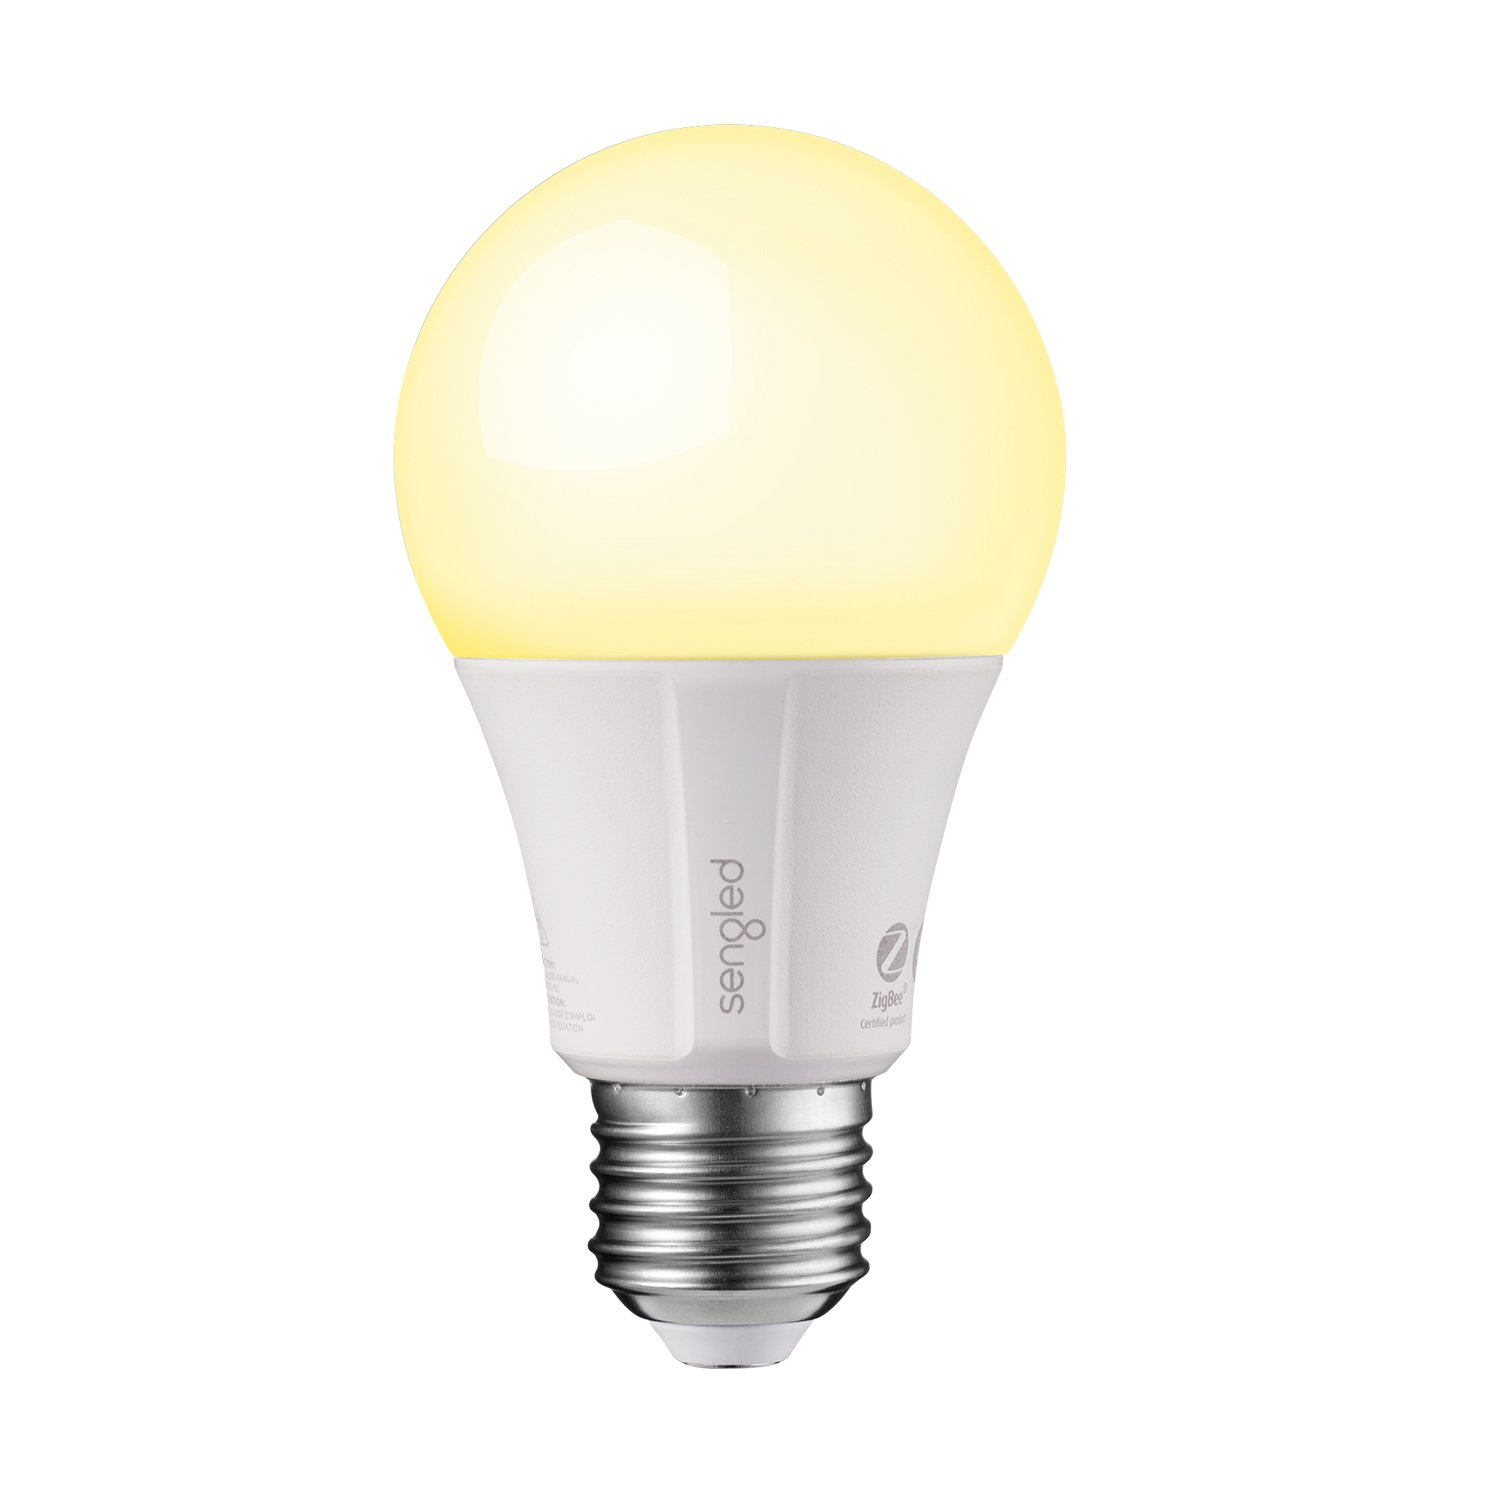 Details About Sengled Element Classic Dimmable A19 Smart Bulb Compatible With Smartthings